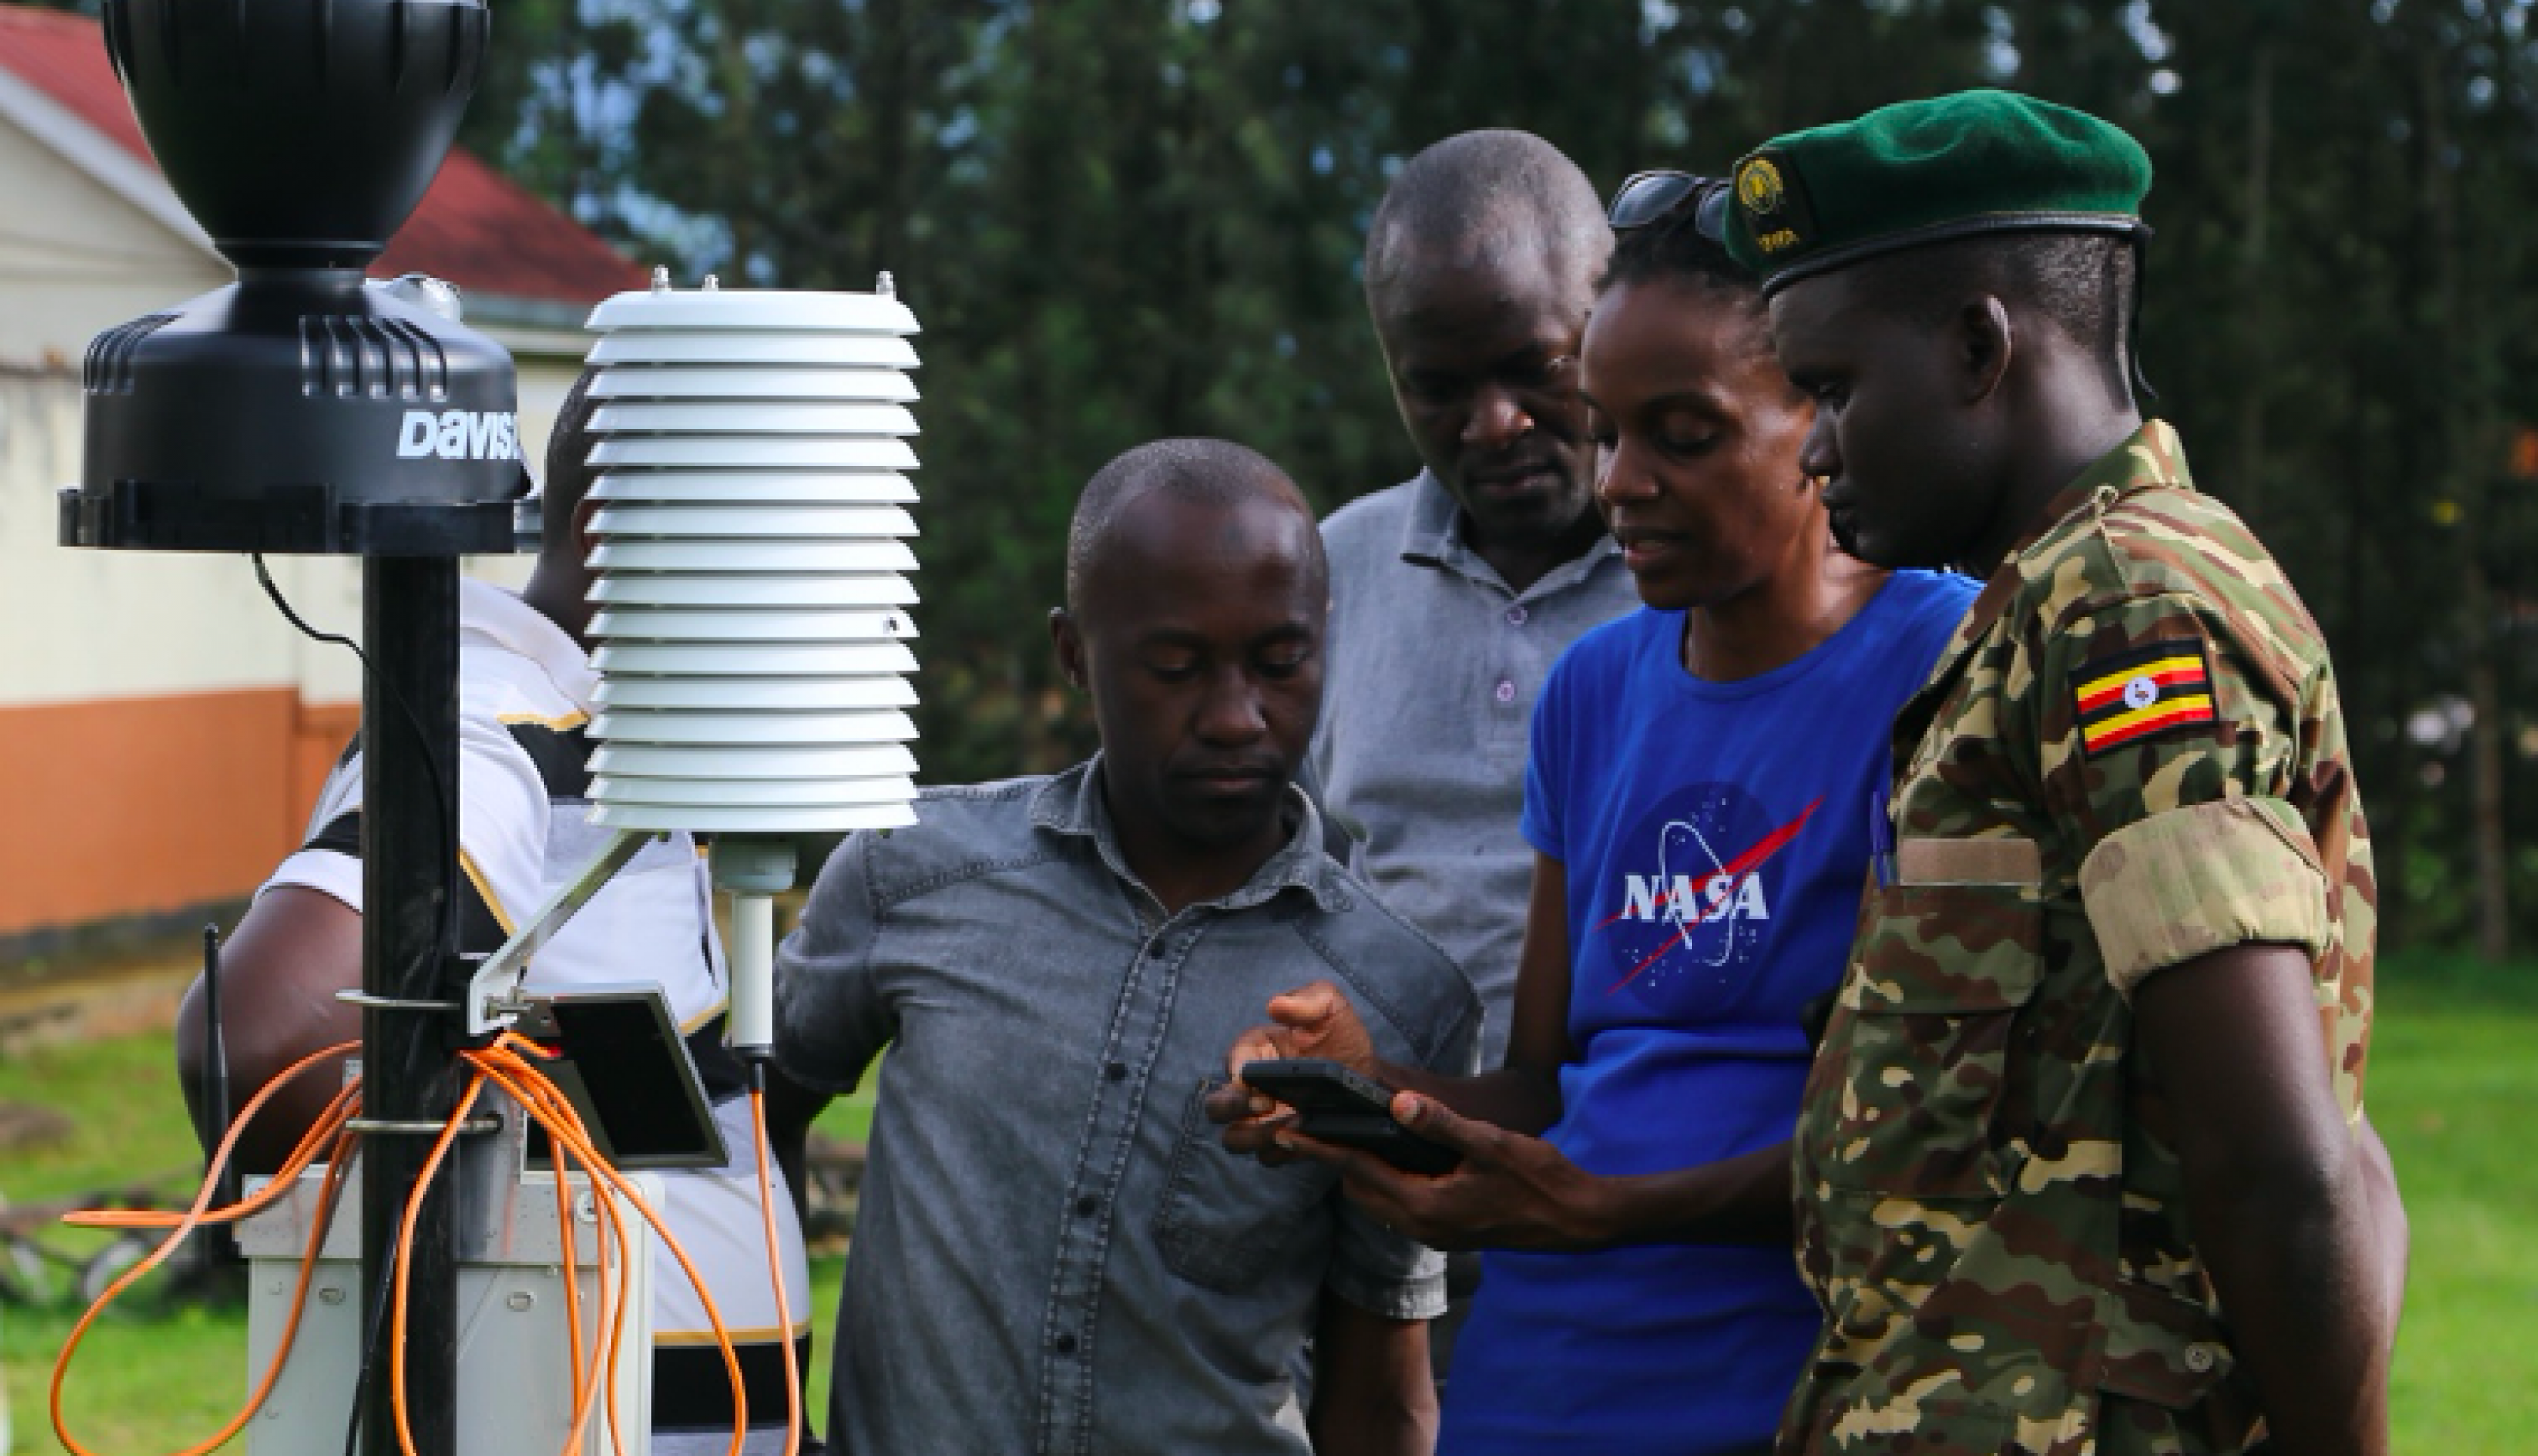 Photo of scientist showing instrument to government staff